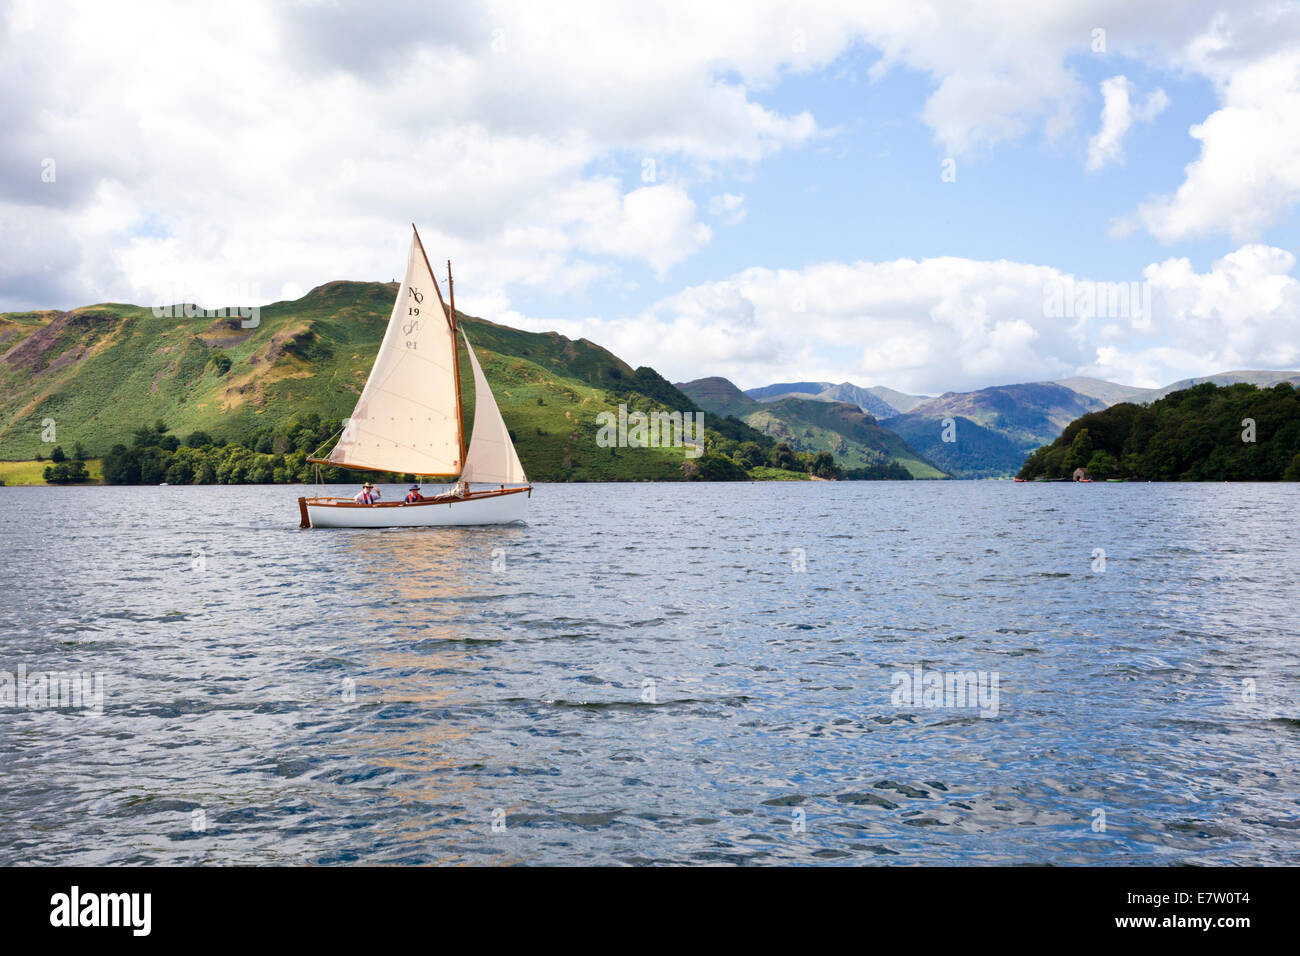 A sailing dinghy in the English Lake District on Ullswater, Cumbria UK - Stock Image